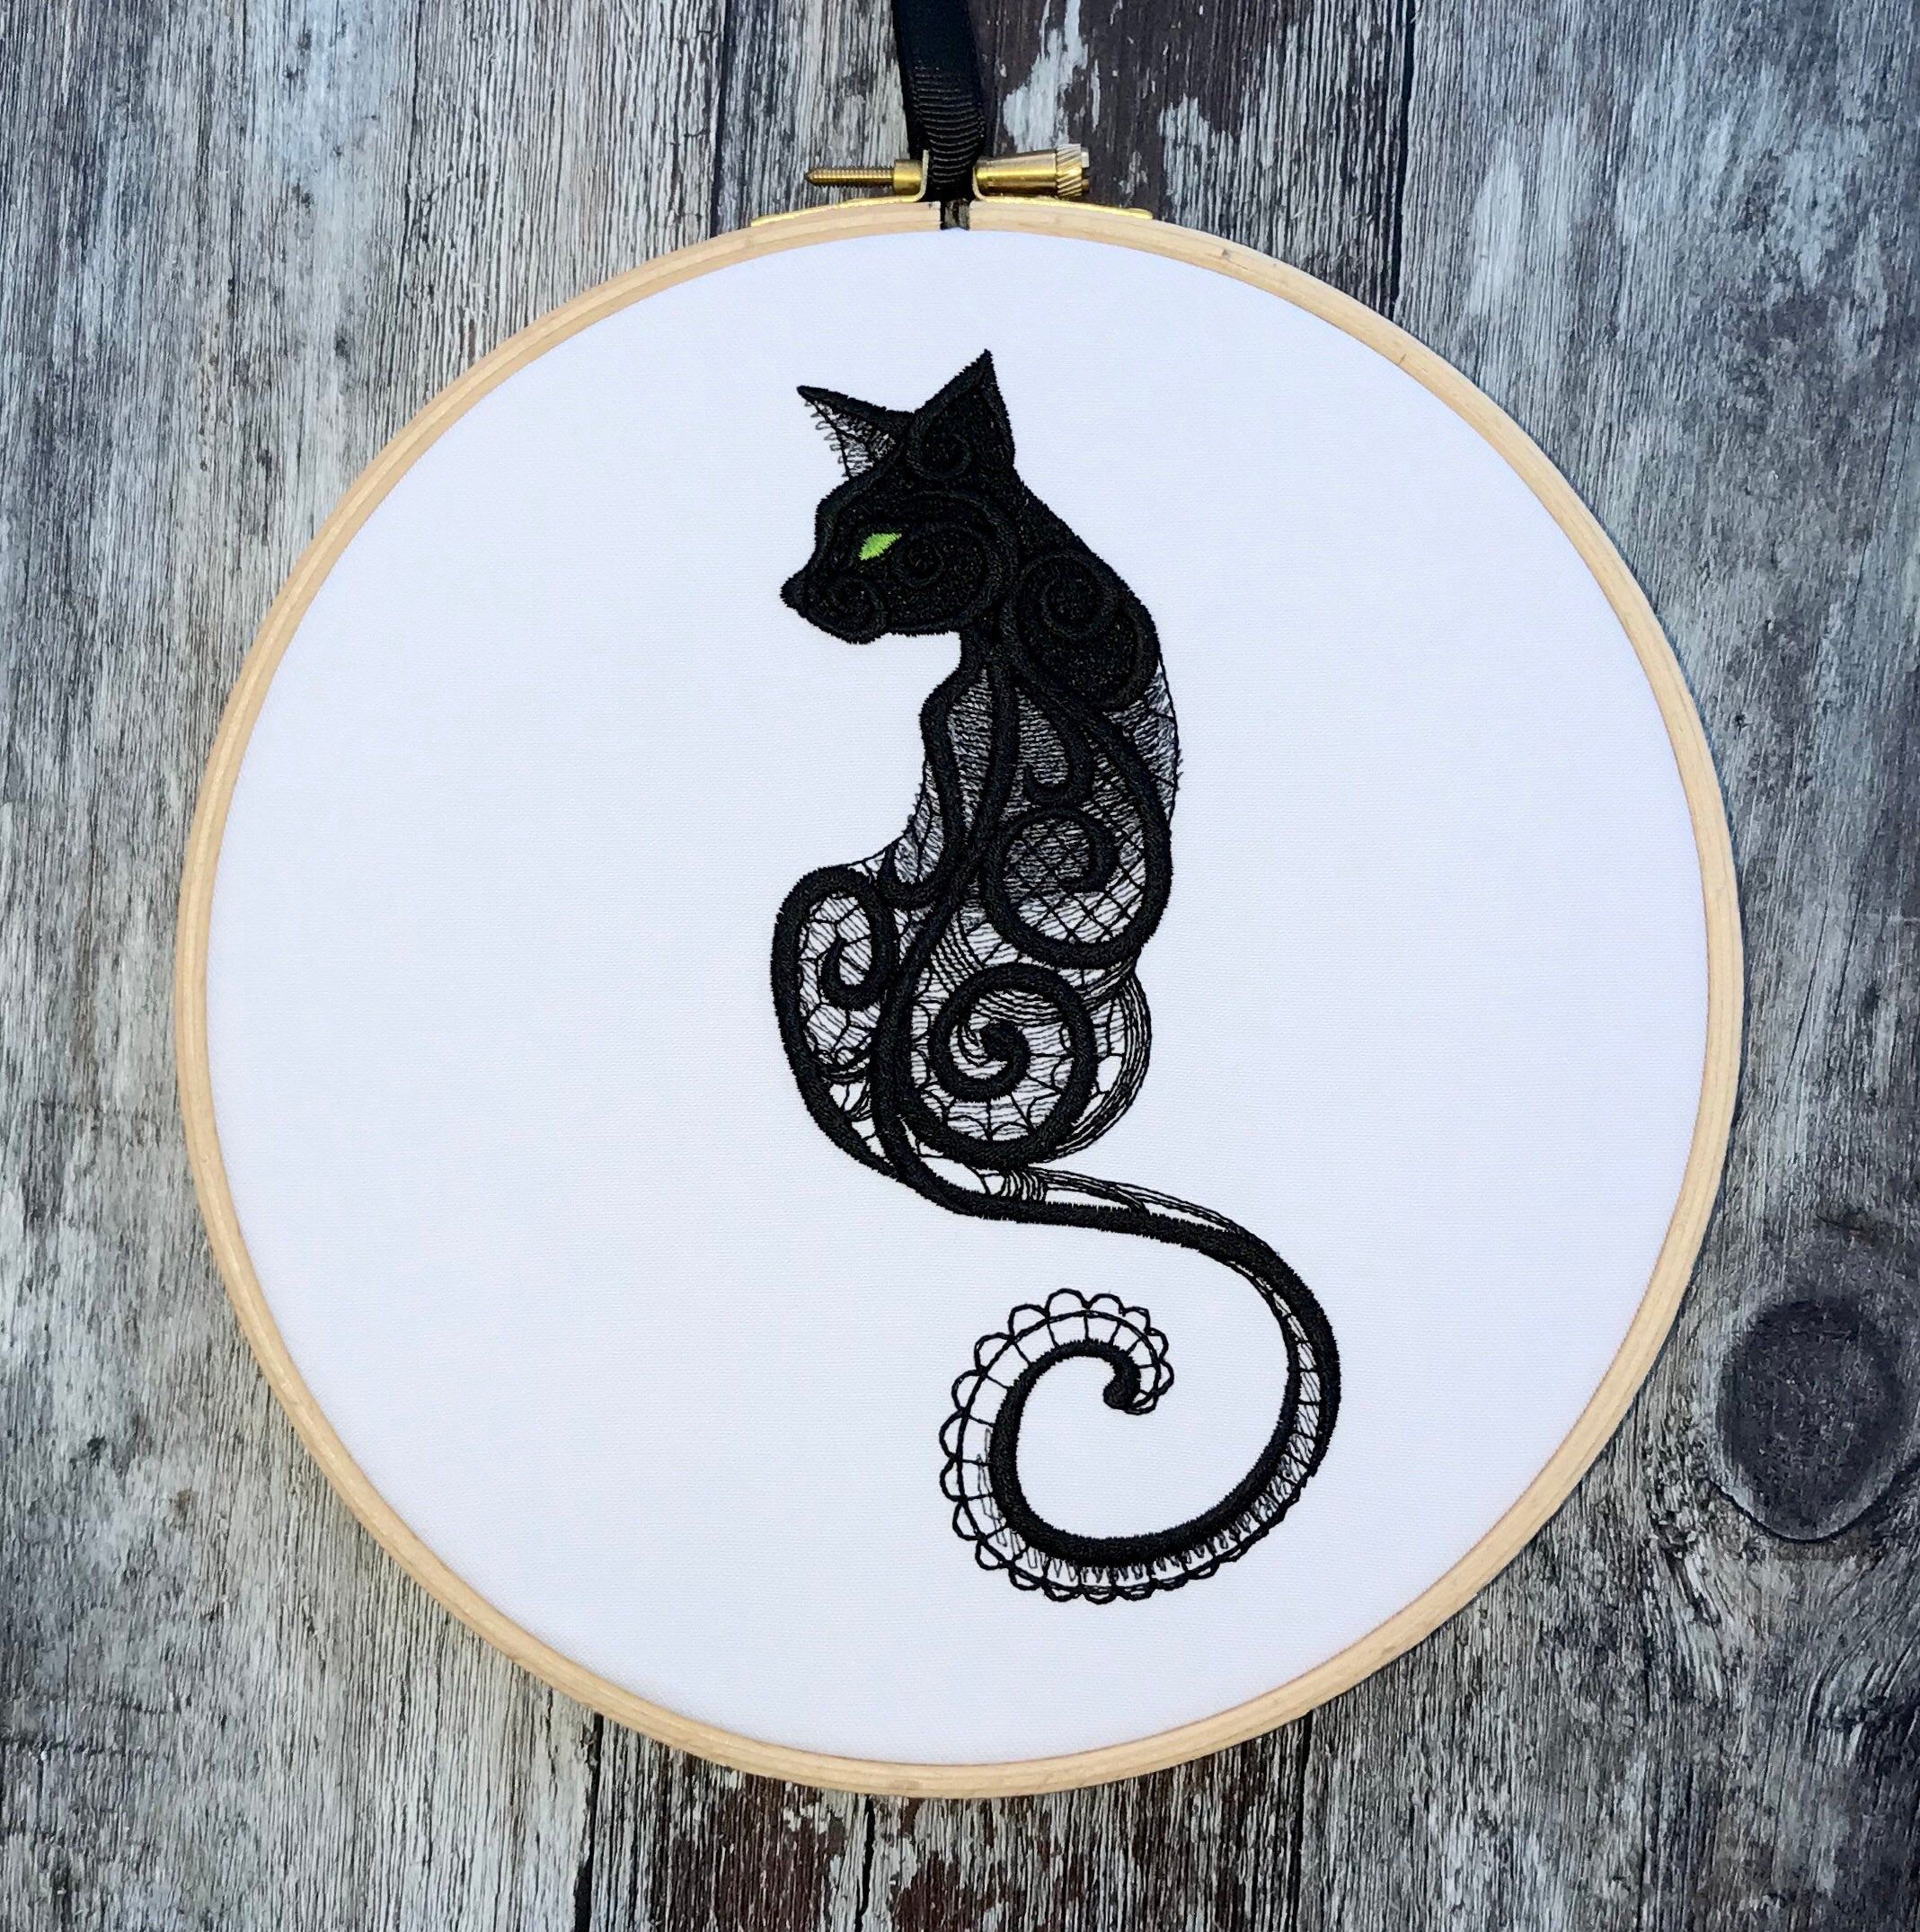 Black lace effect cat, Embroidery hoop art